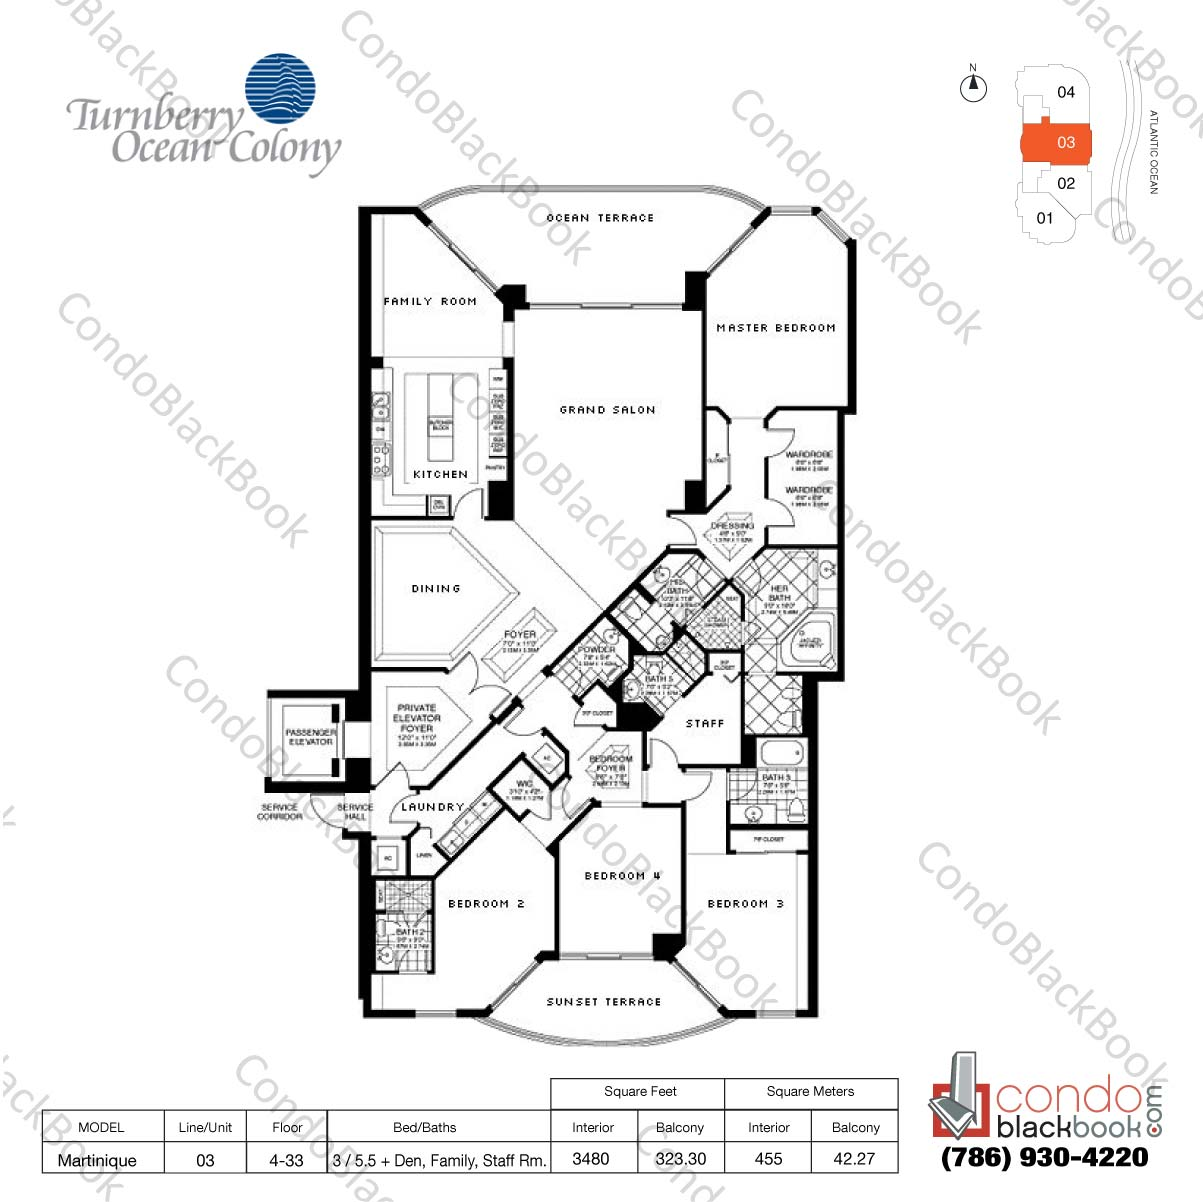 Floor plan for Turnberry Ocean Colony Sunny Isles Beach, model Martinique, line 03, 3 / 5.5+ Den, Family Rm., Staff Rm. bedrooms, 3480 sq ft